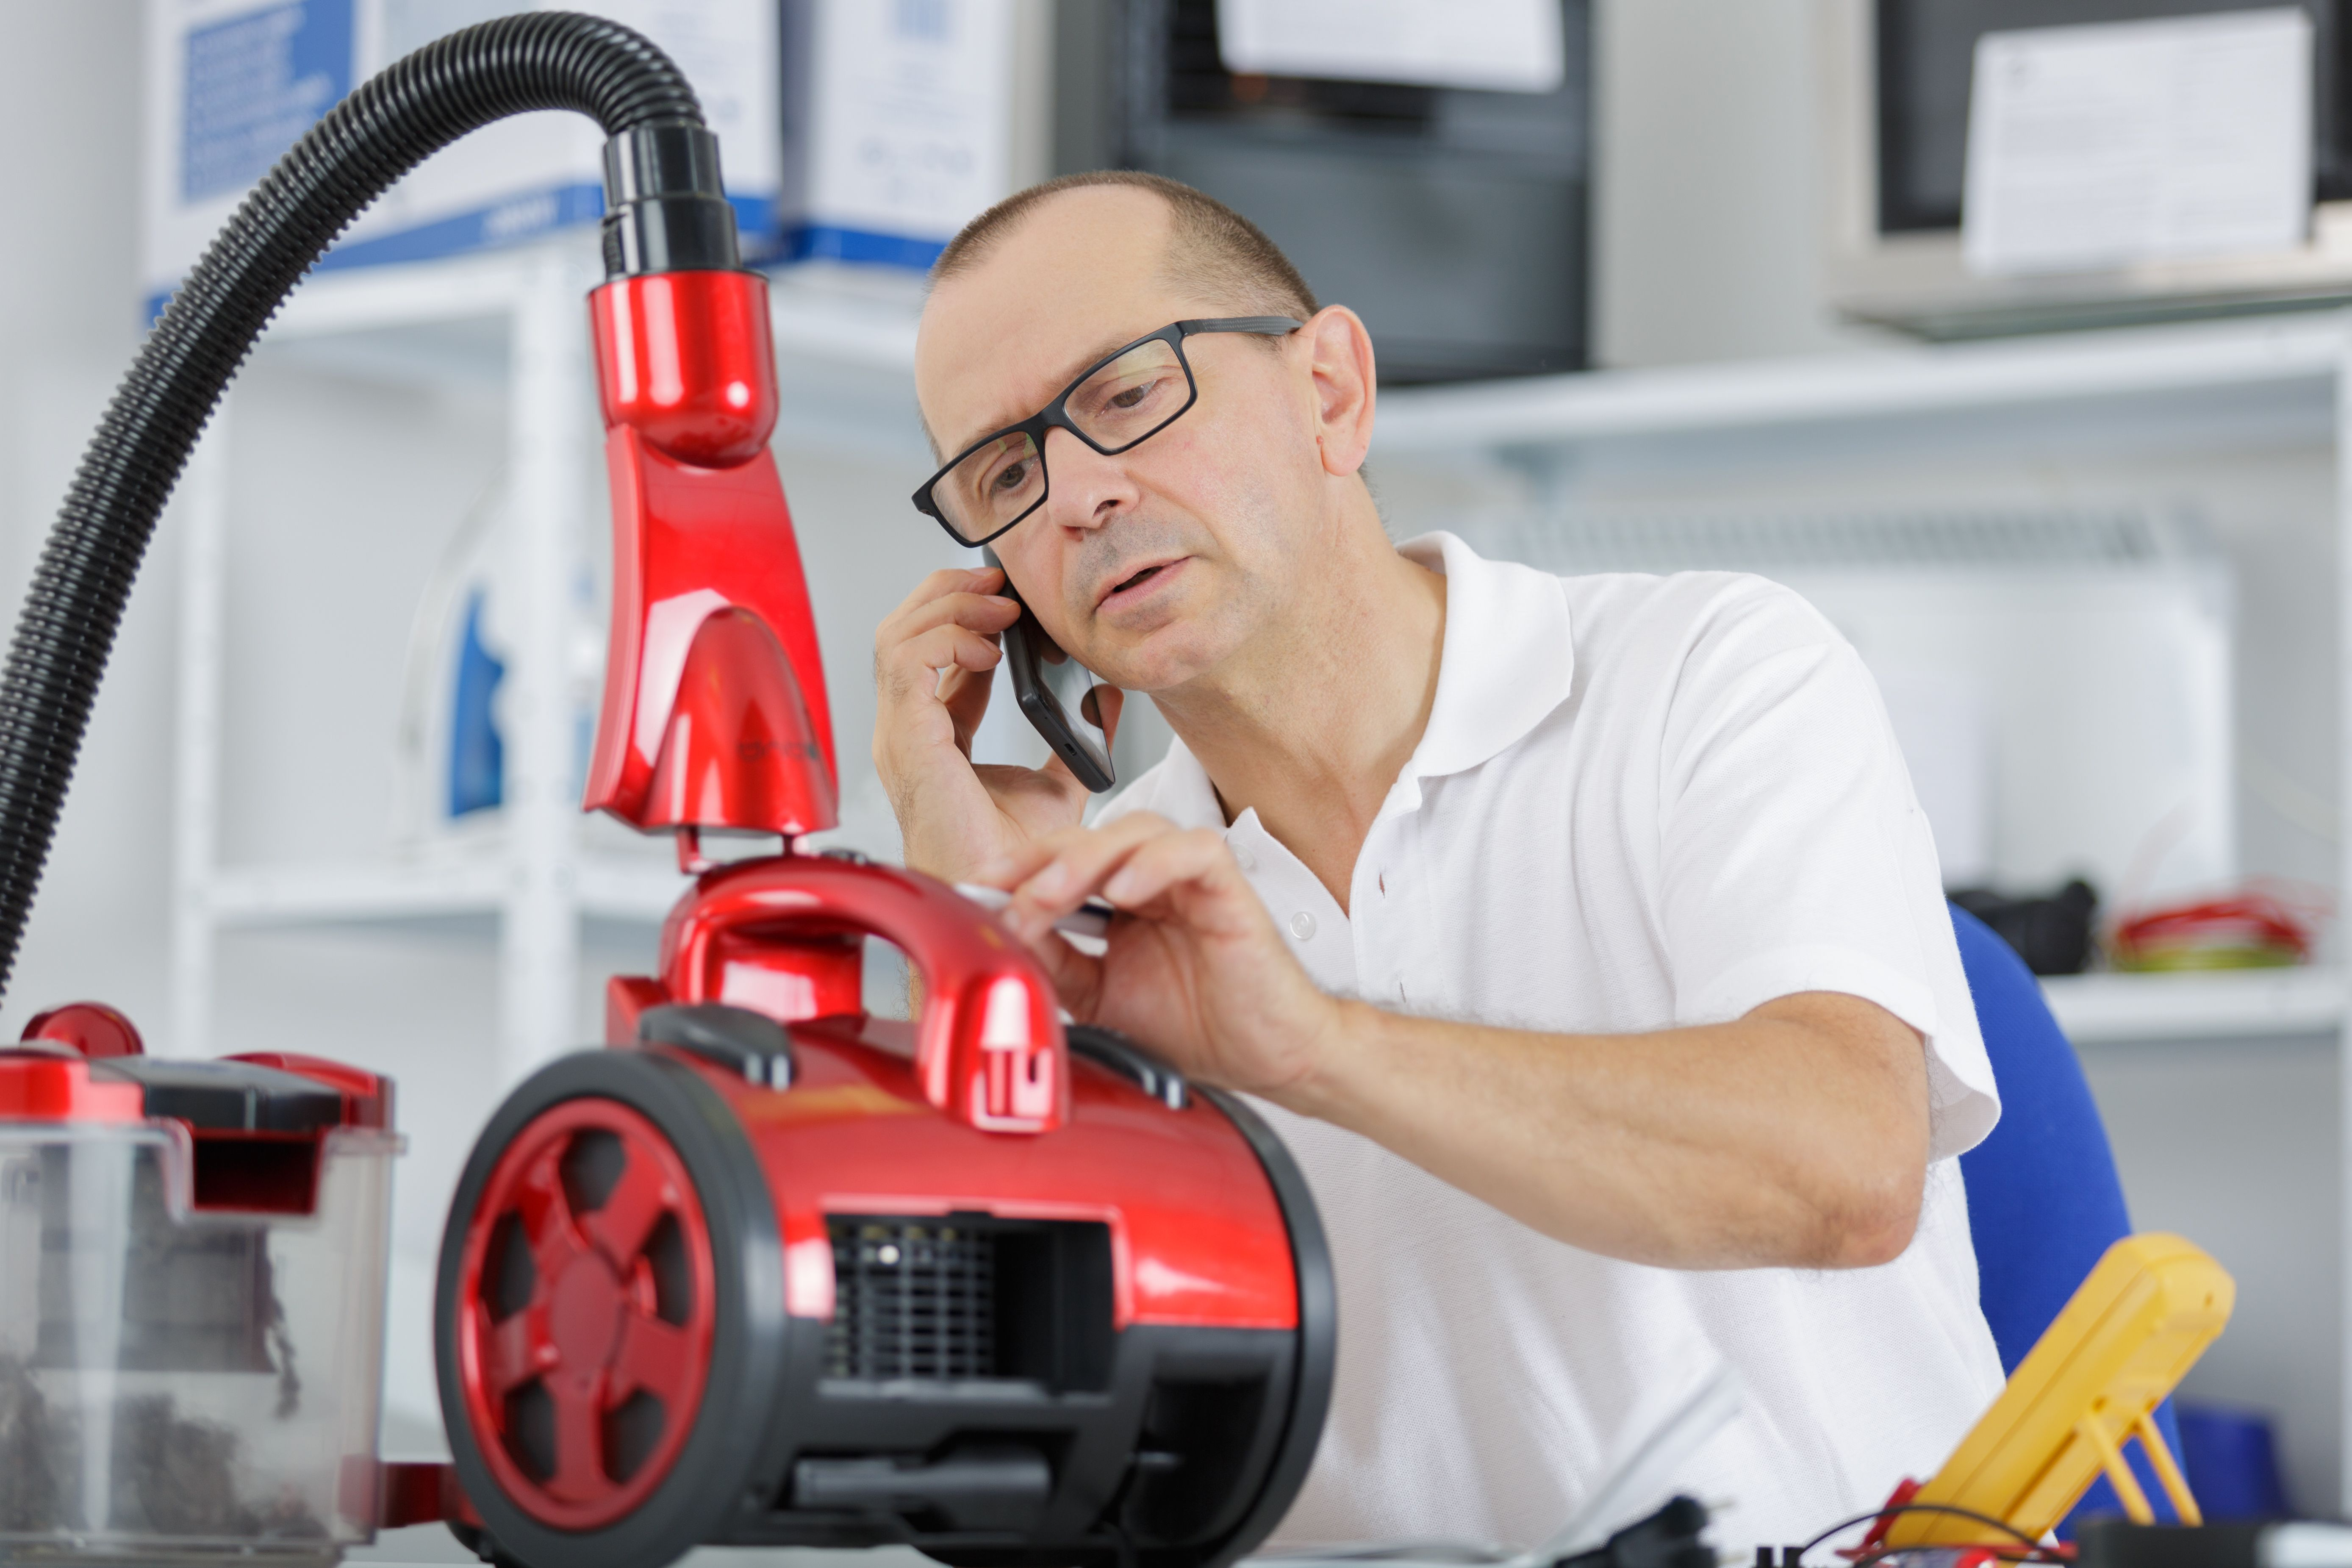 Central Vacuum Installation Toronto Vacuums, Vacuum repair